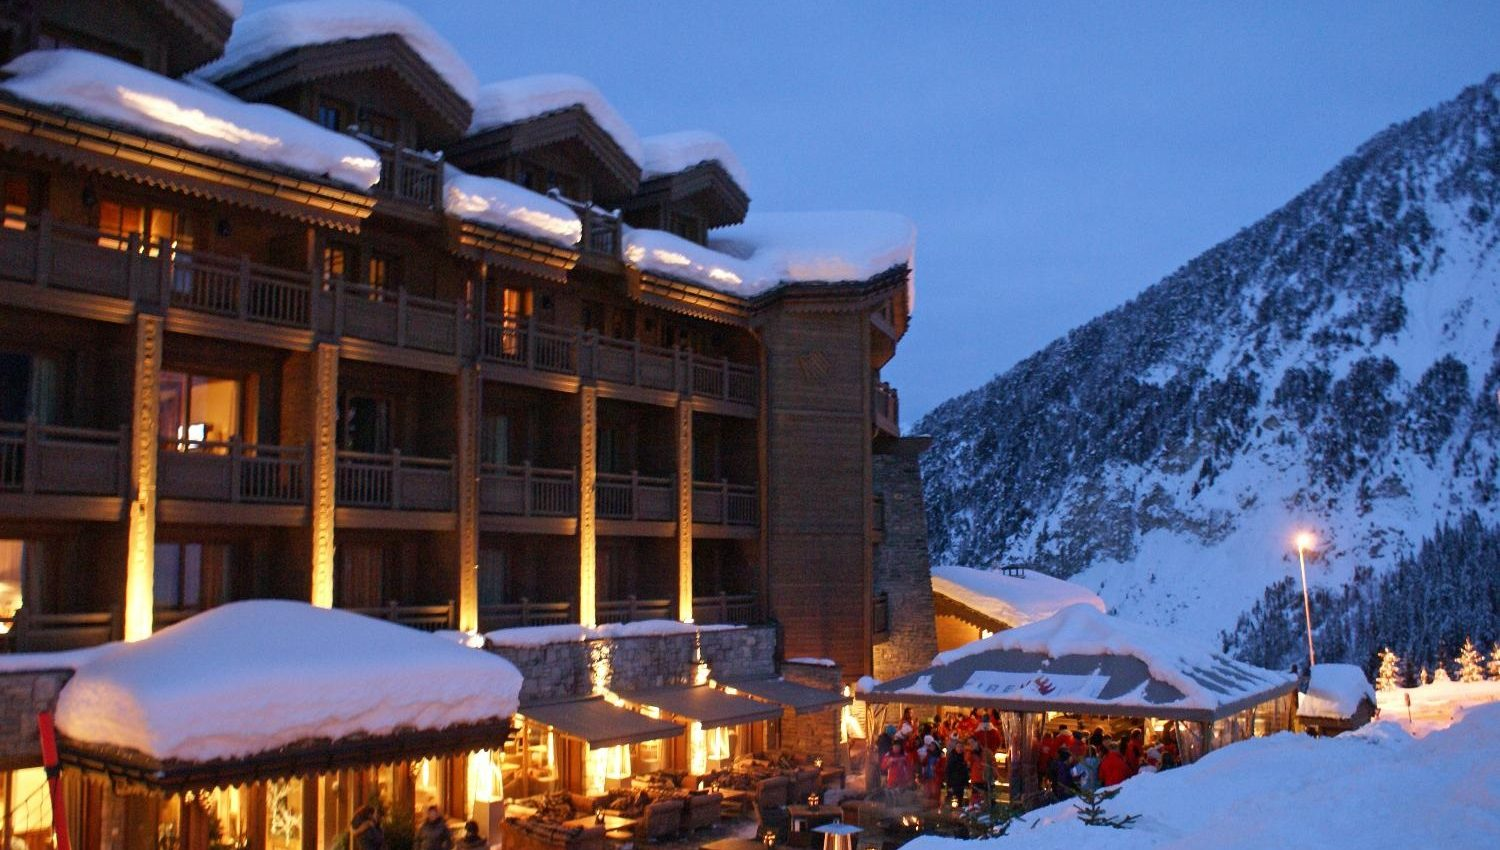 Courchevel-1650-Le-Portetta-Hotel-9f